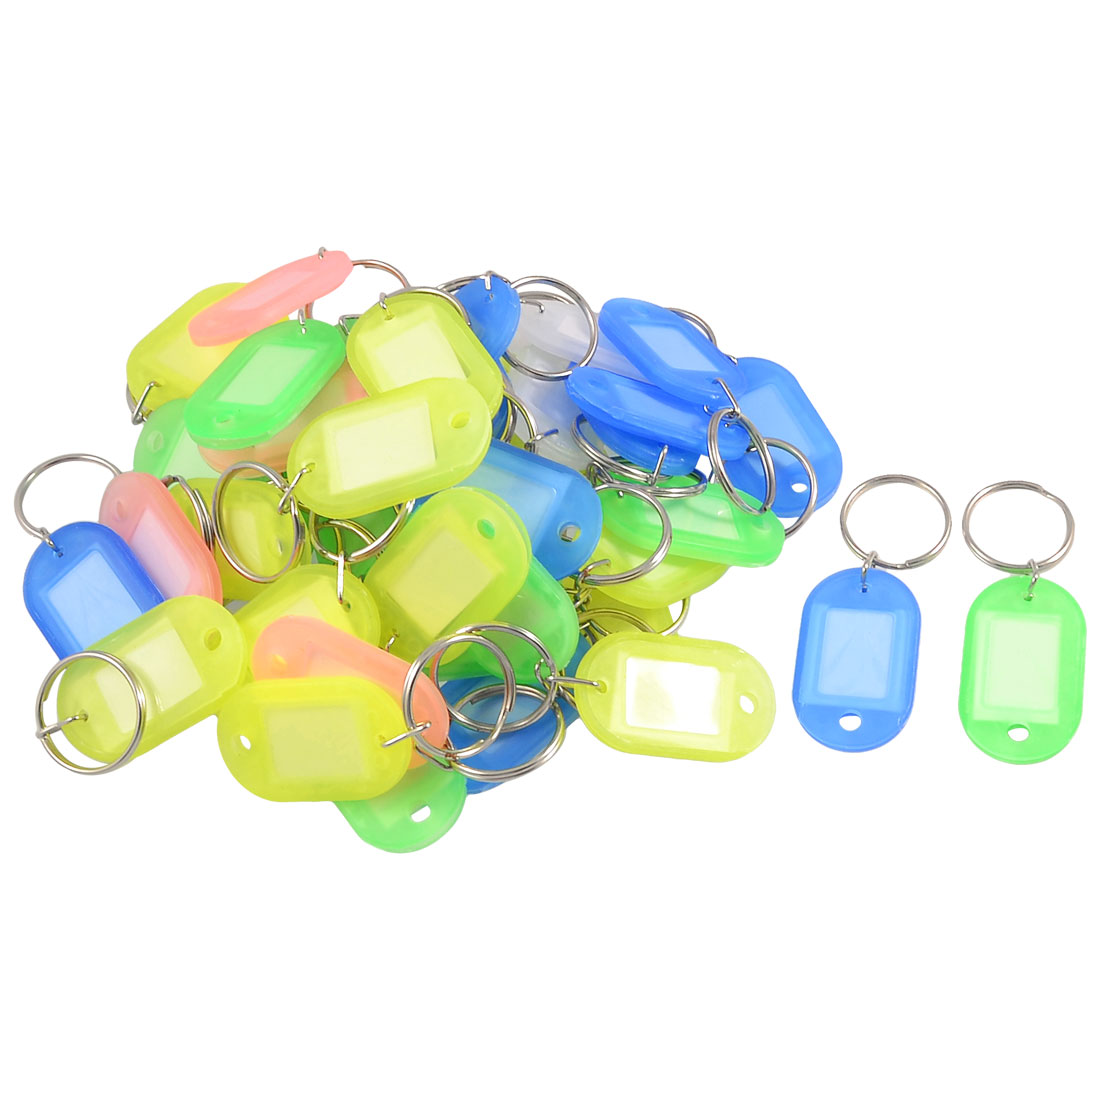 50 Pcs Assorted Color Keys ID Labels Tags Split Ring Key Rings